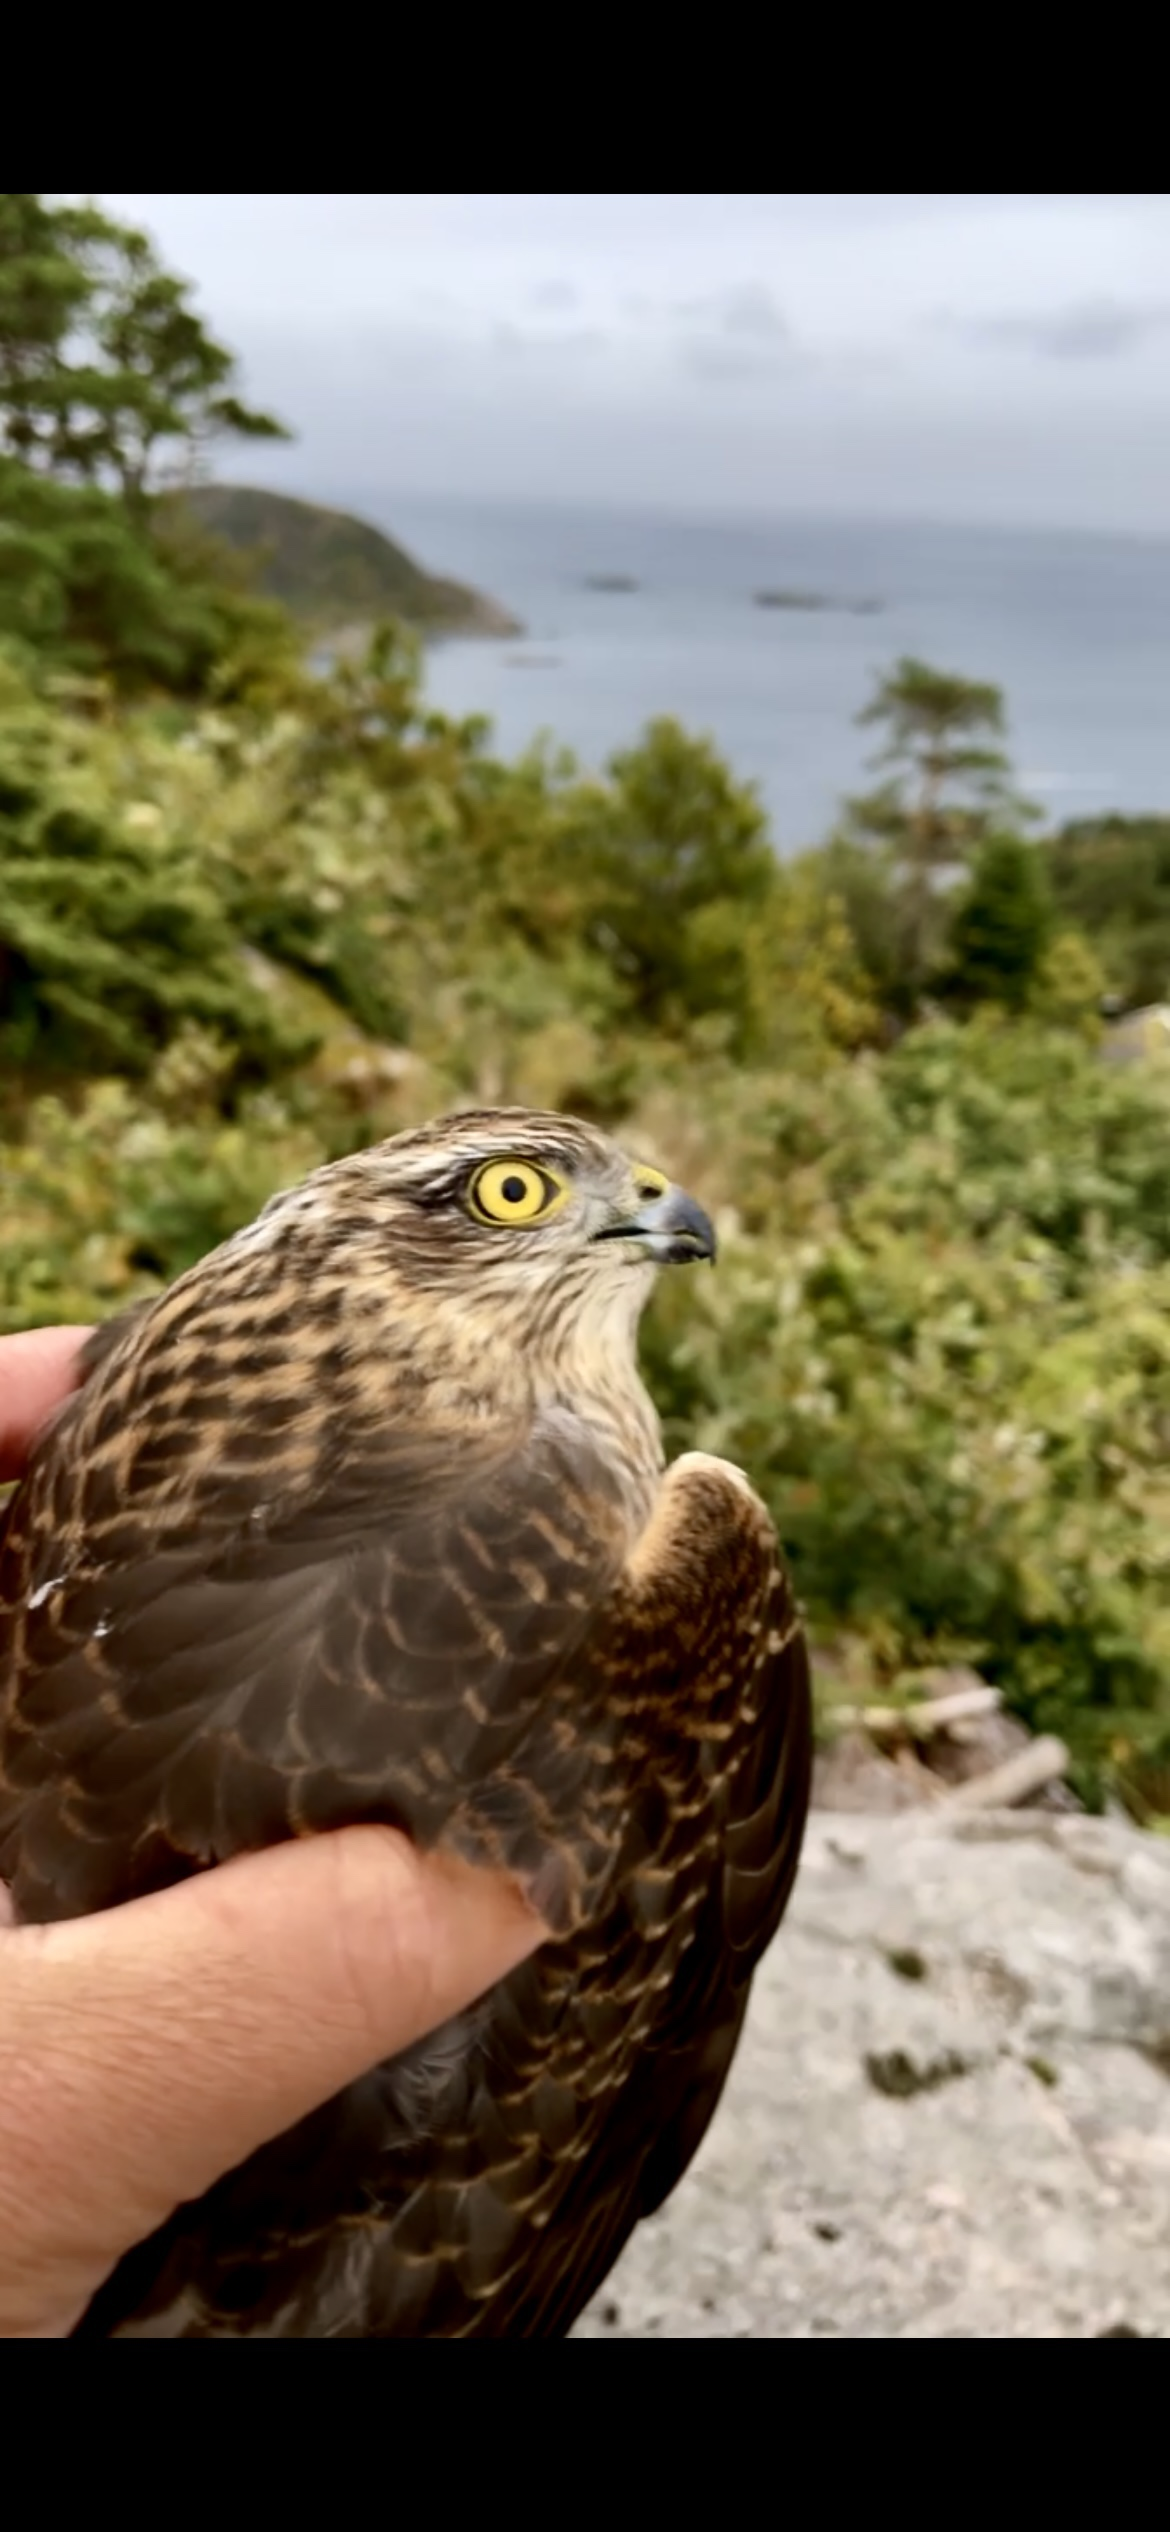 I rescued a hawk! Just a small everyday happystory.